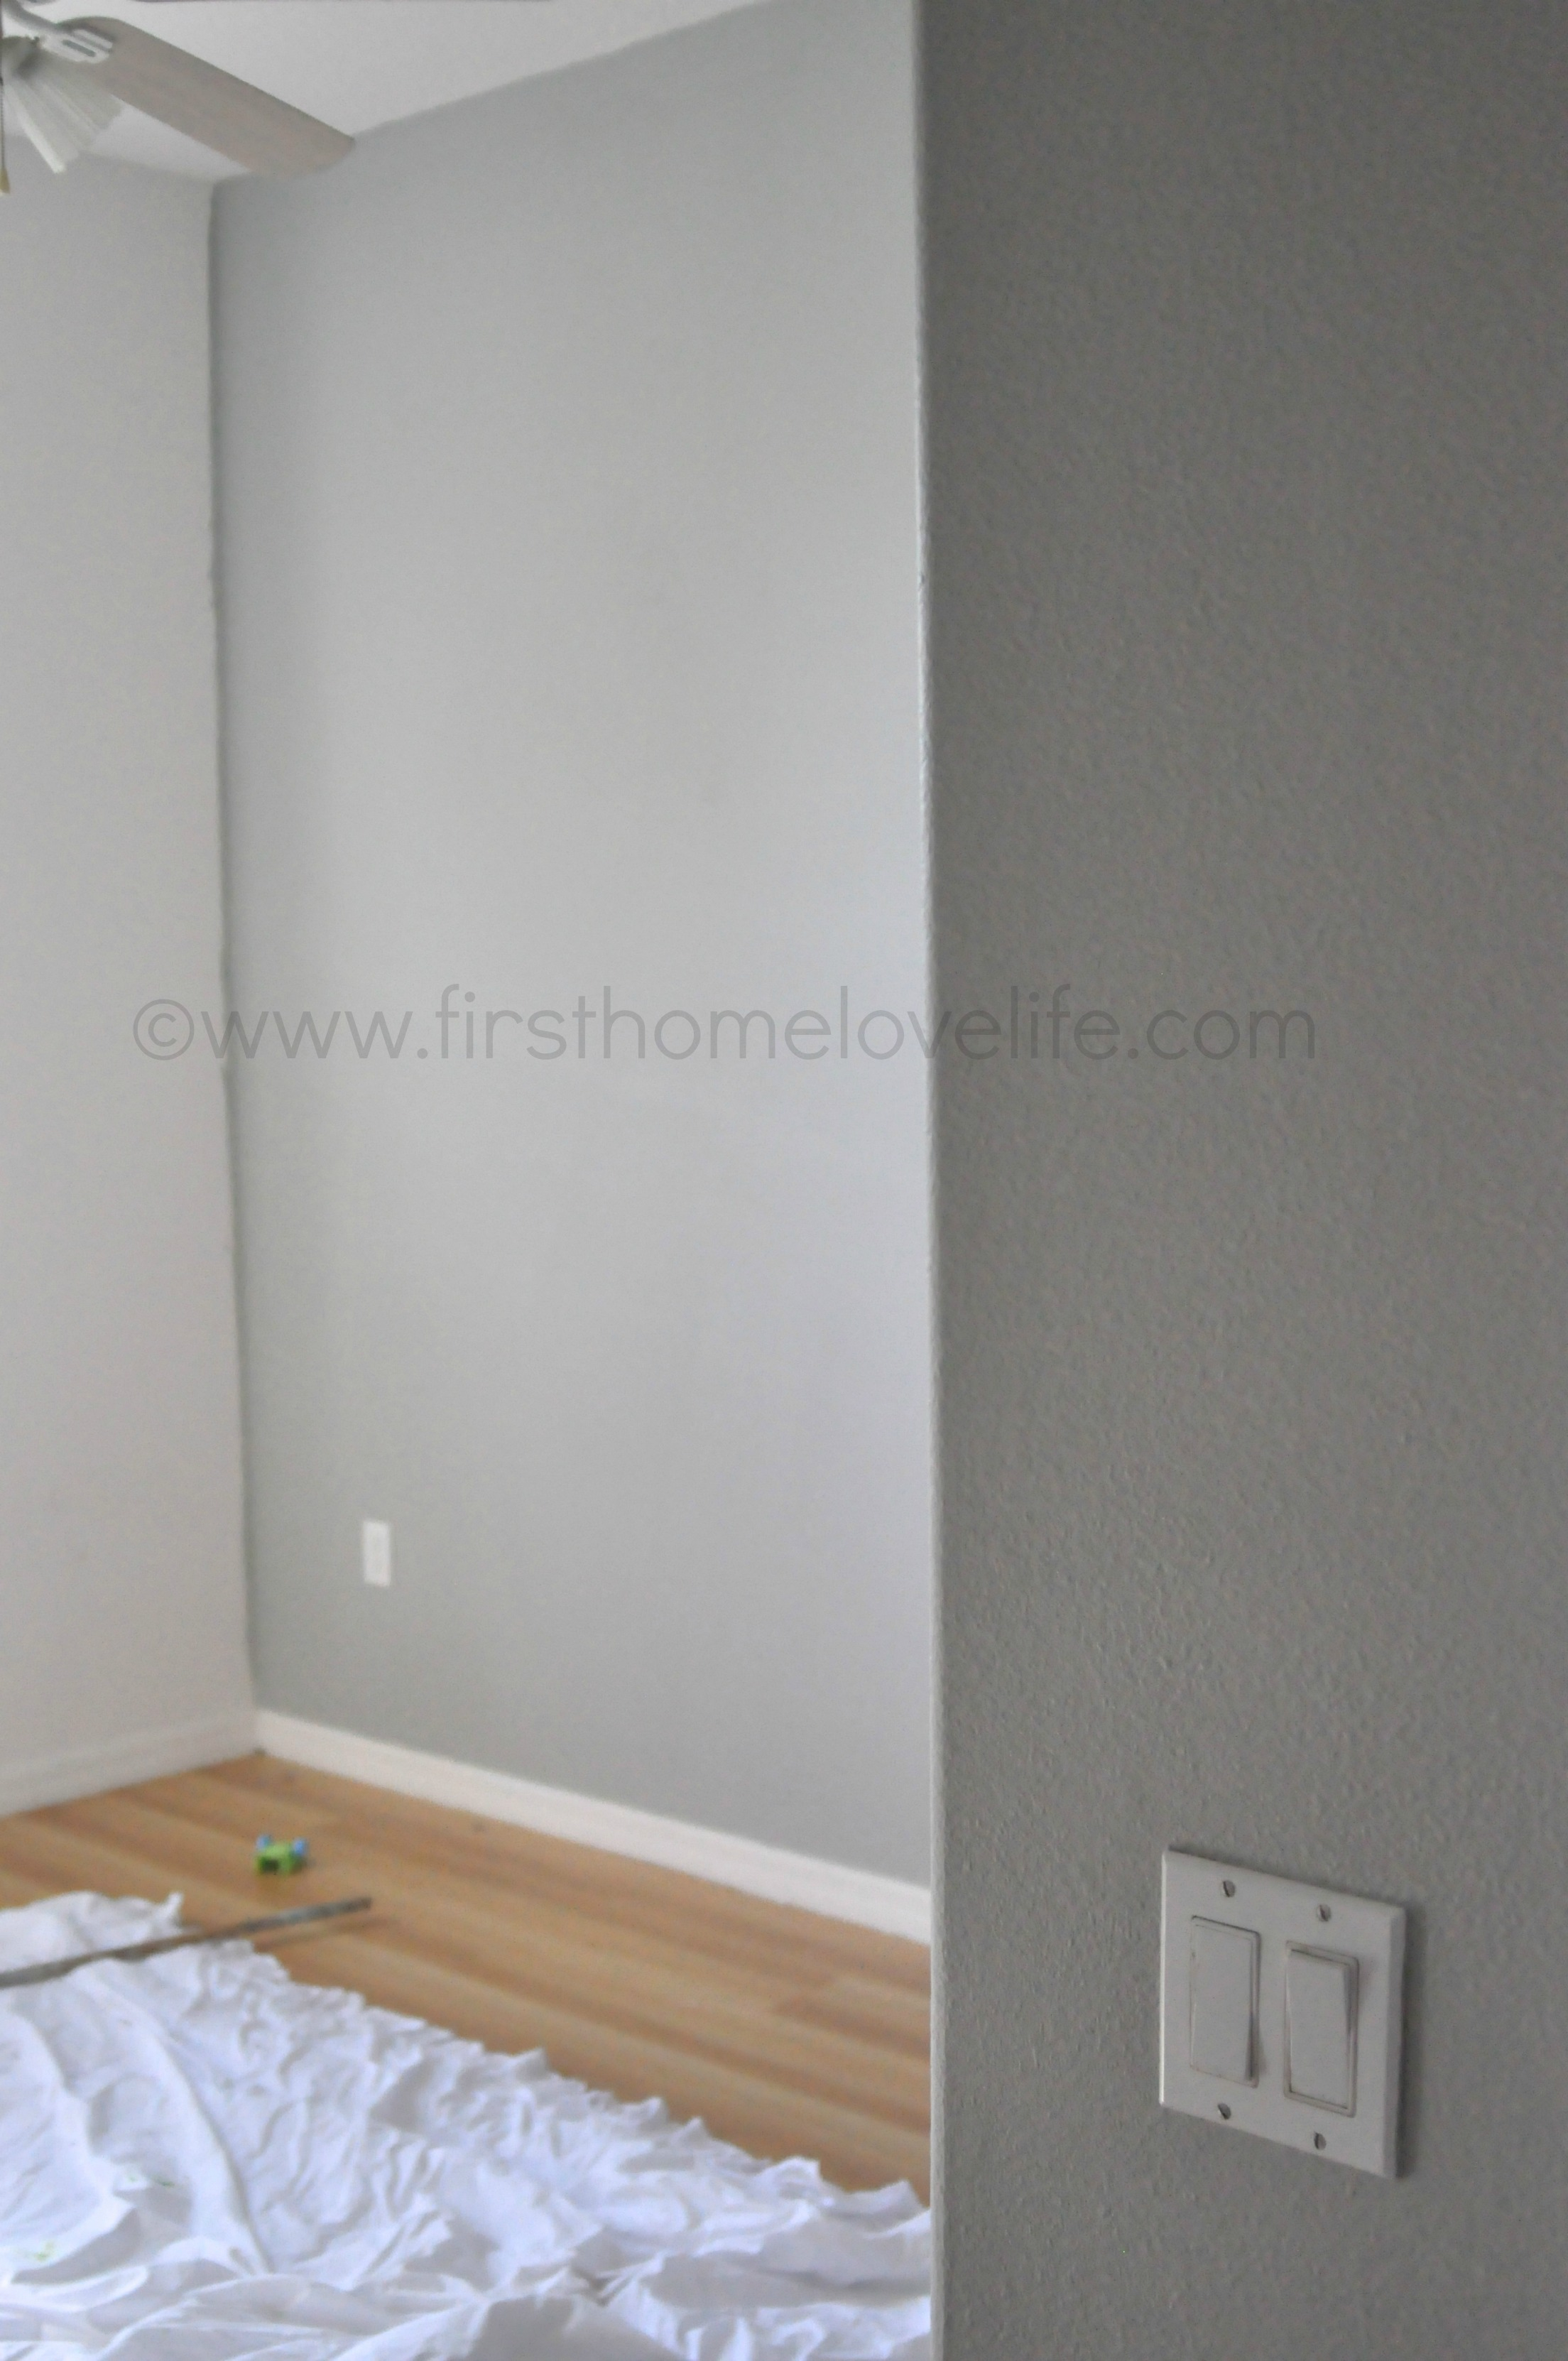 The 50 shades of gray paint first home love life Touch of grey benjamin moore